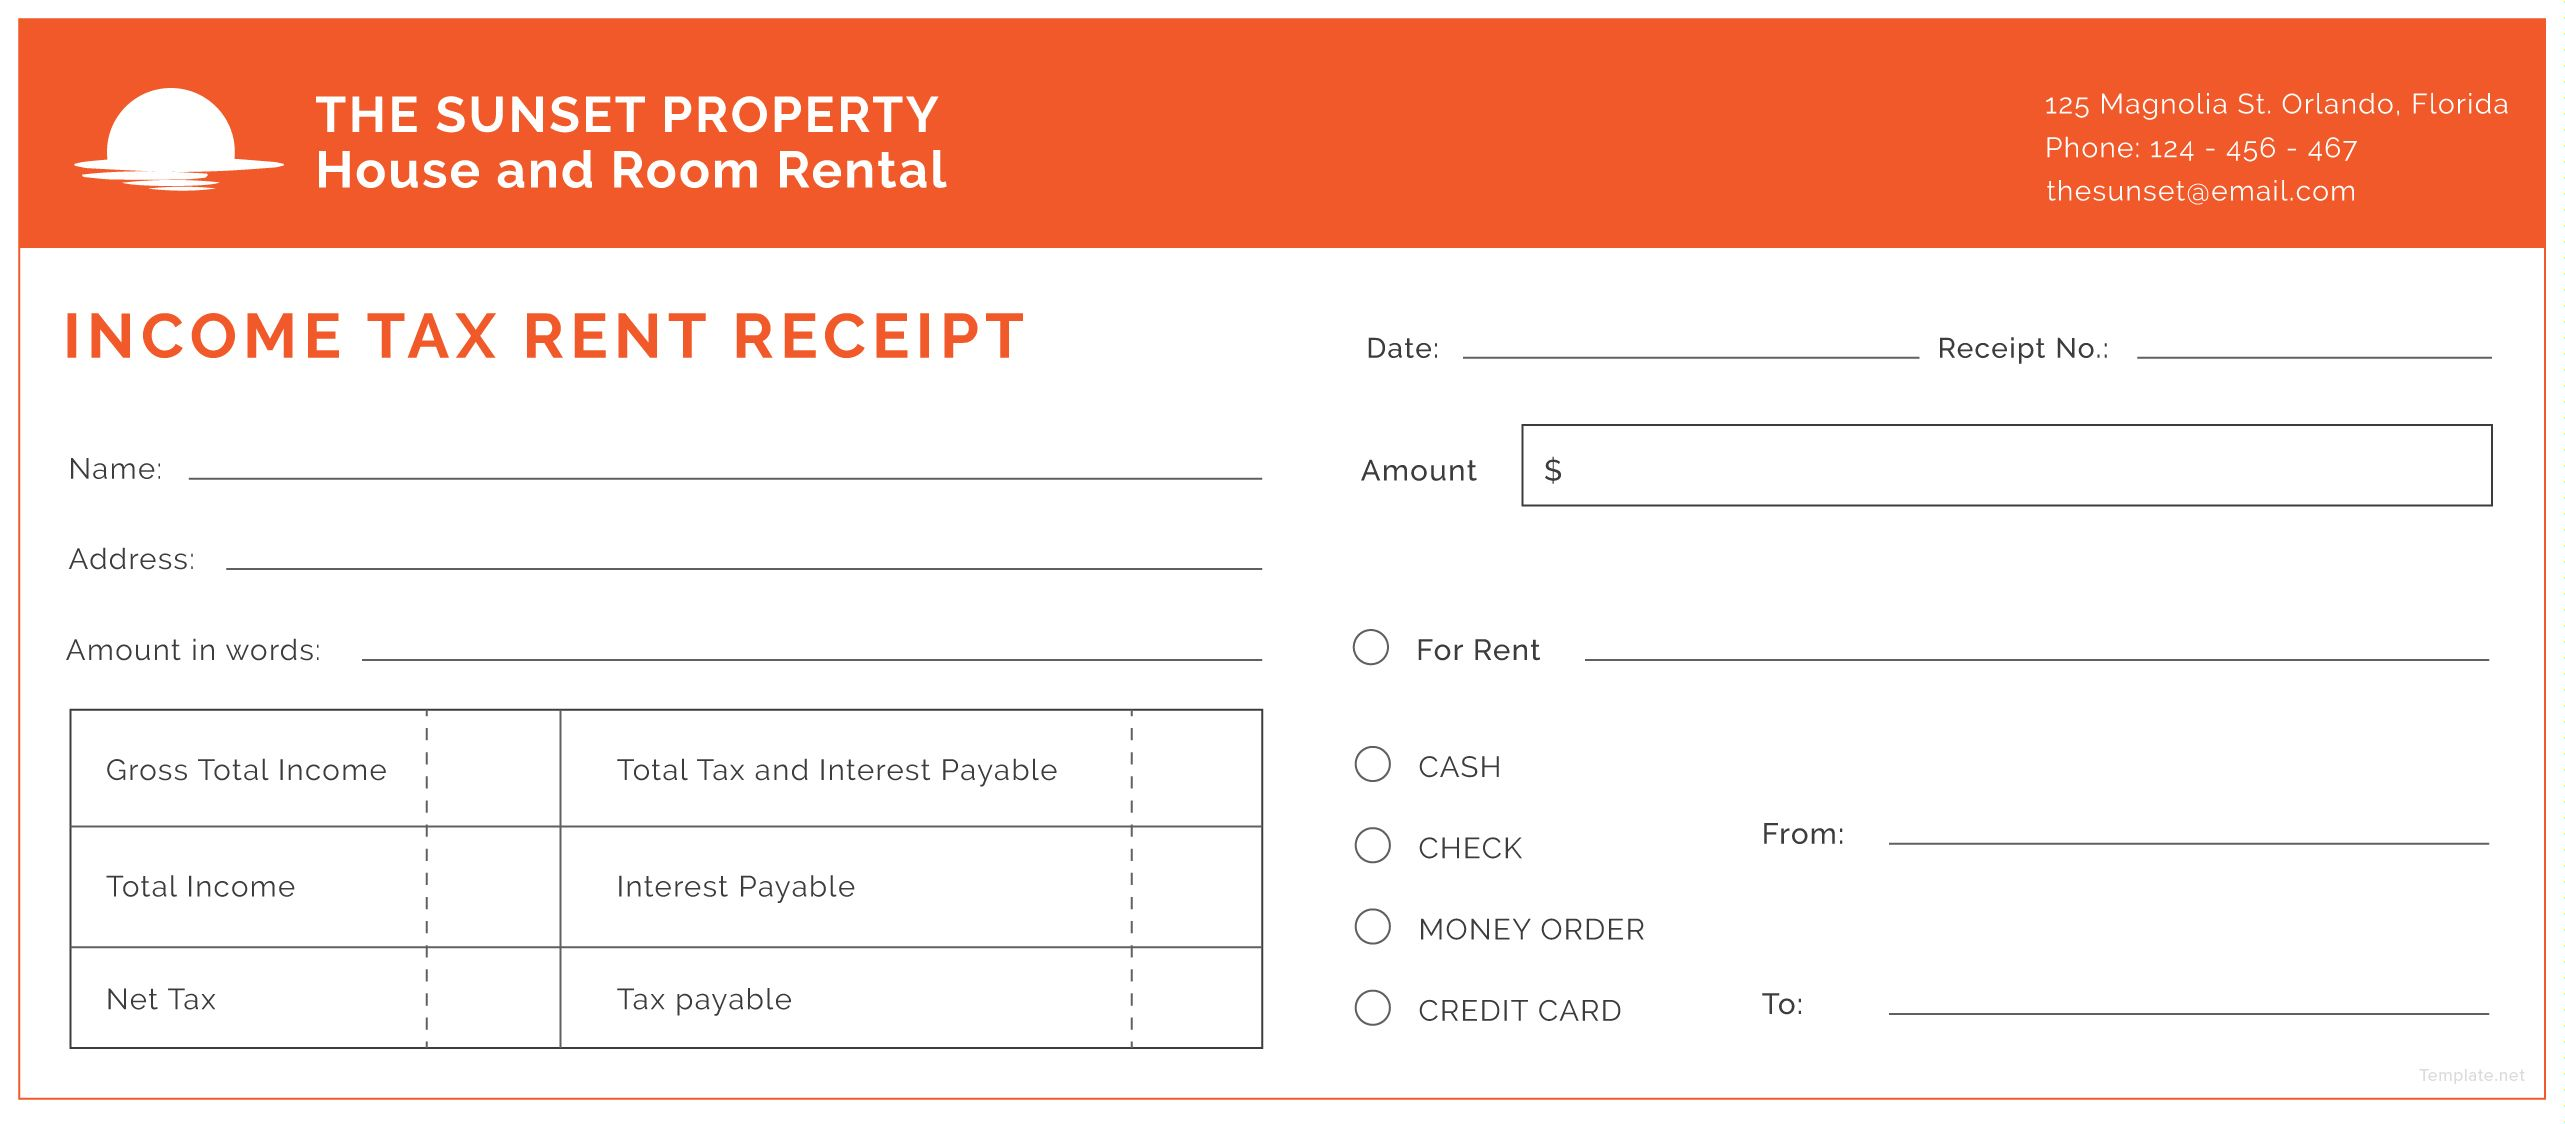 Free Rent Receipts Unique Download Income Tax Rent Receipt Template For Free In Illustrator .